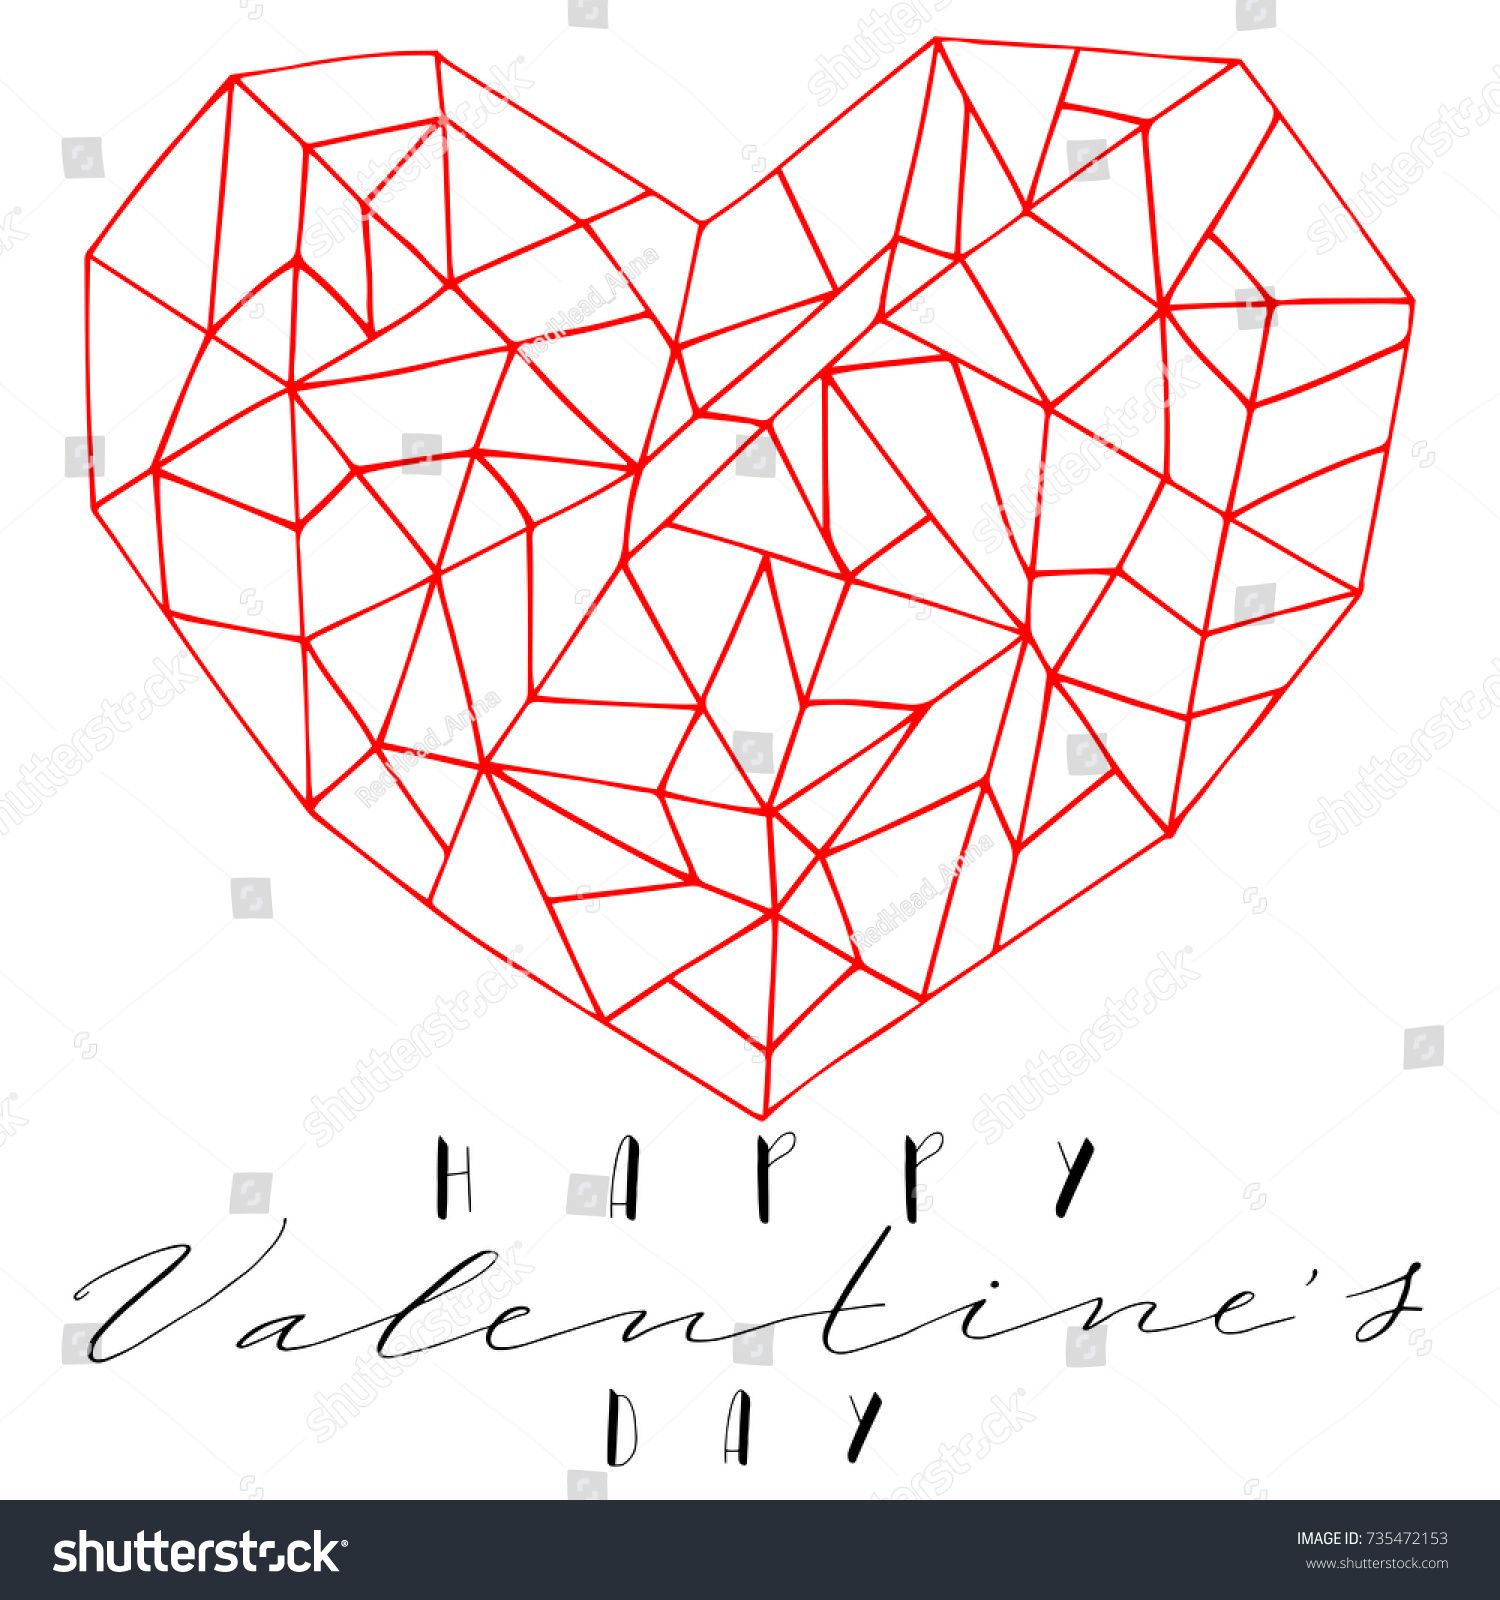 Drawing Heart Text Symbol Love Valentines Stock Photo Photo Vector